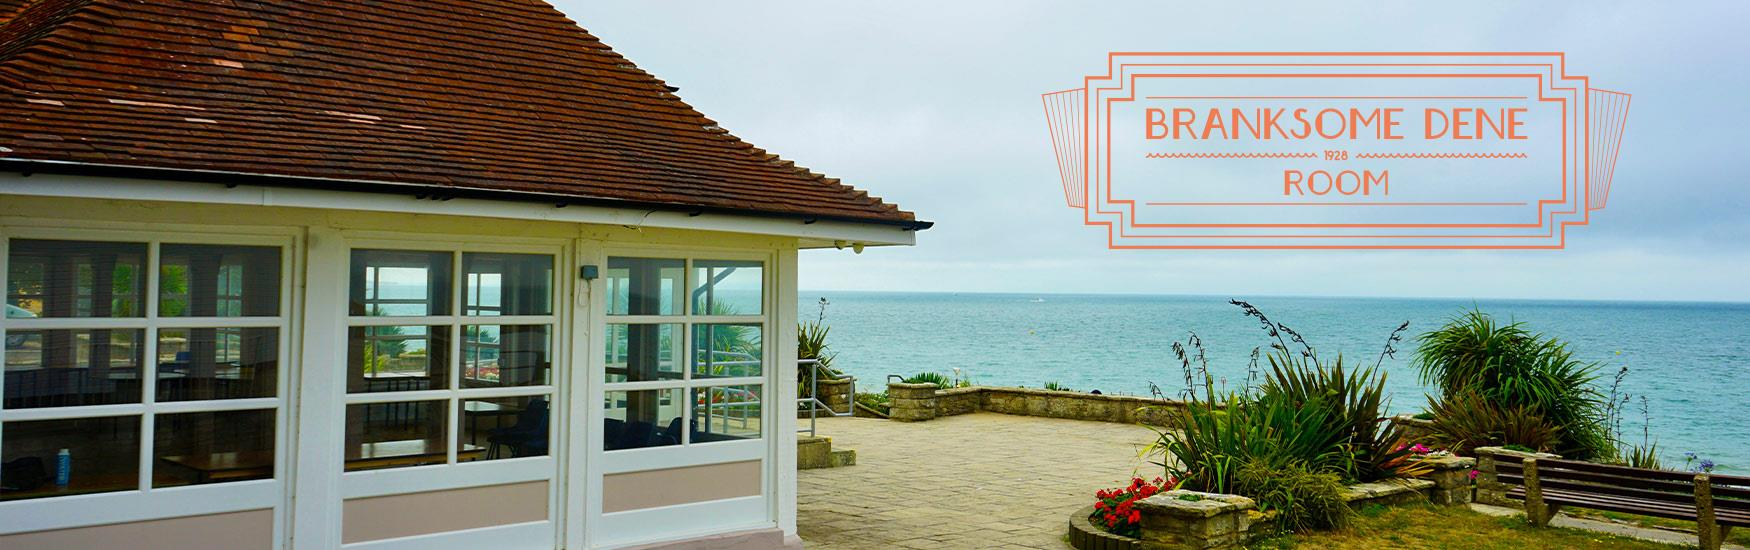 Stunning shot of Branksome dene room with beach in the background and the logo placed on top of the image